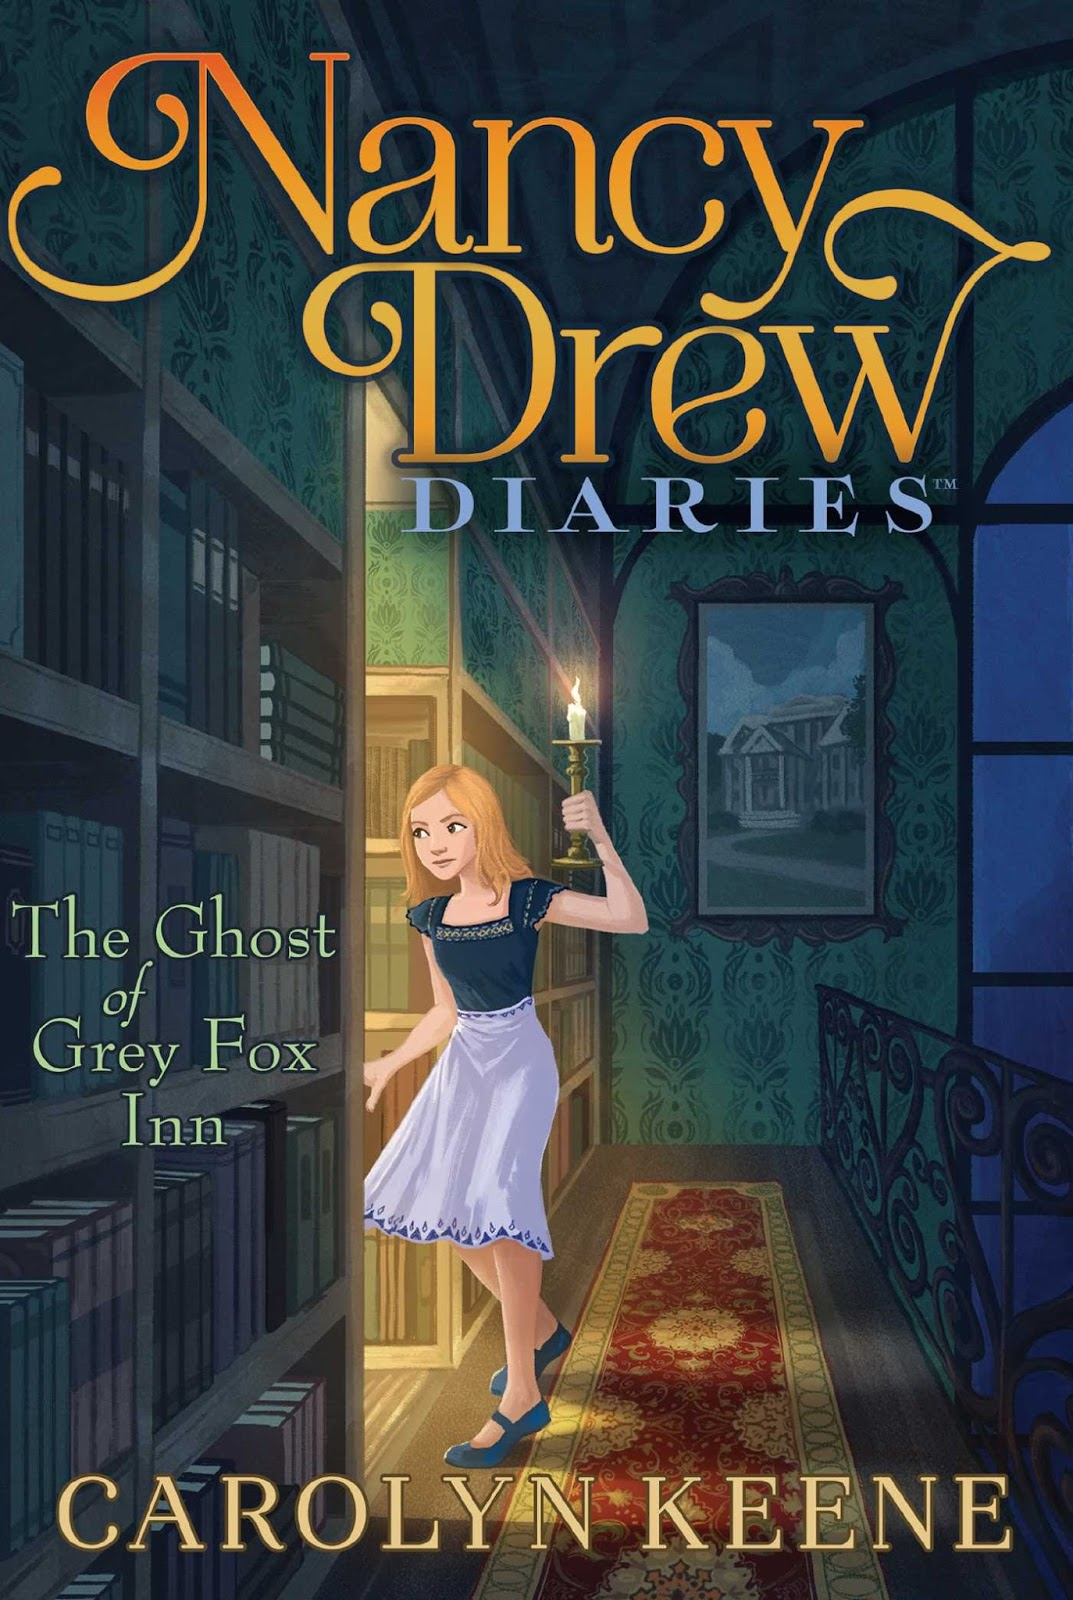 Book Cover Series Pepito : Series books for girls nancy drew diaries the ghost